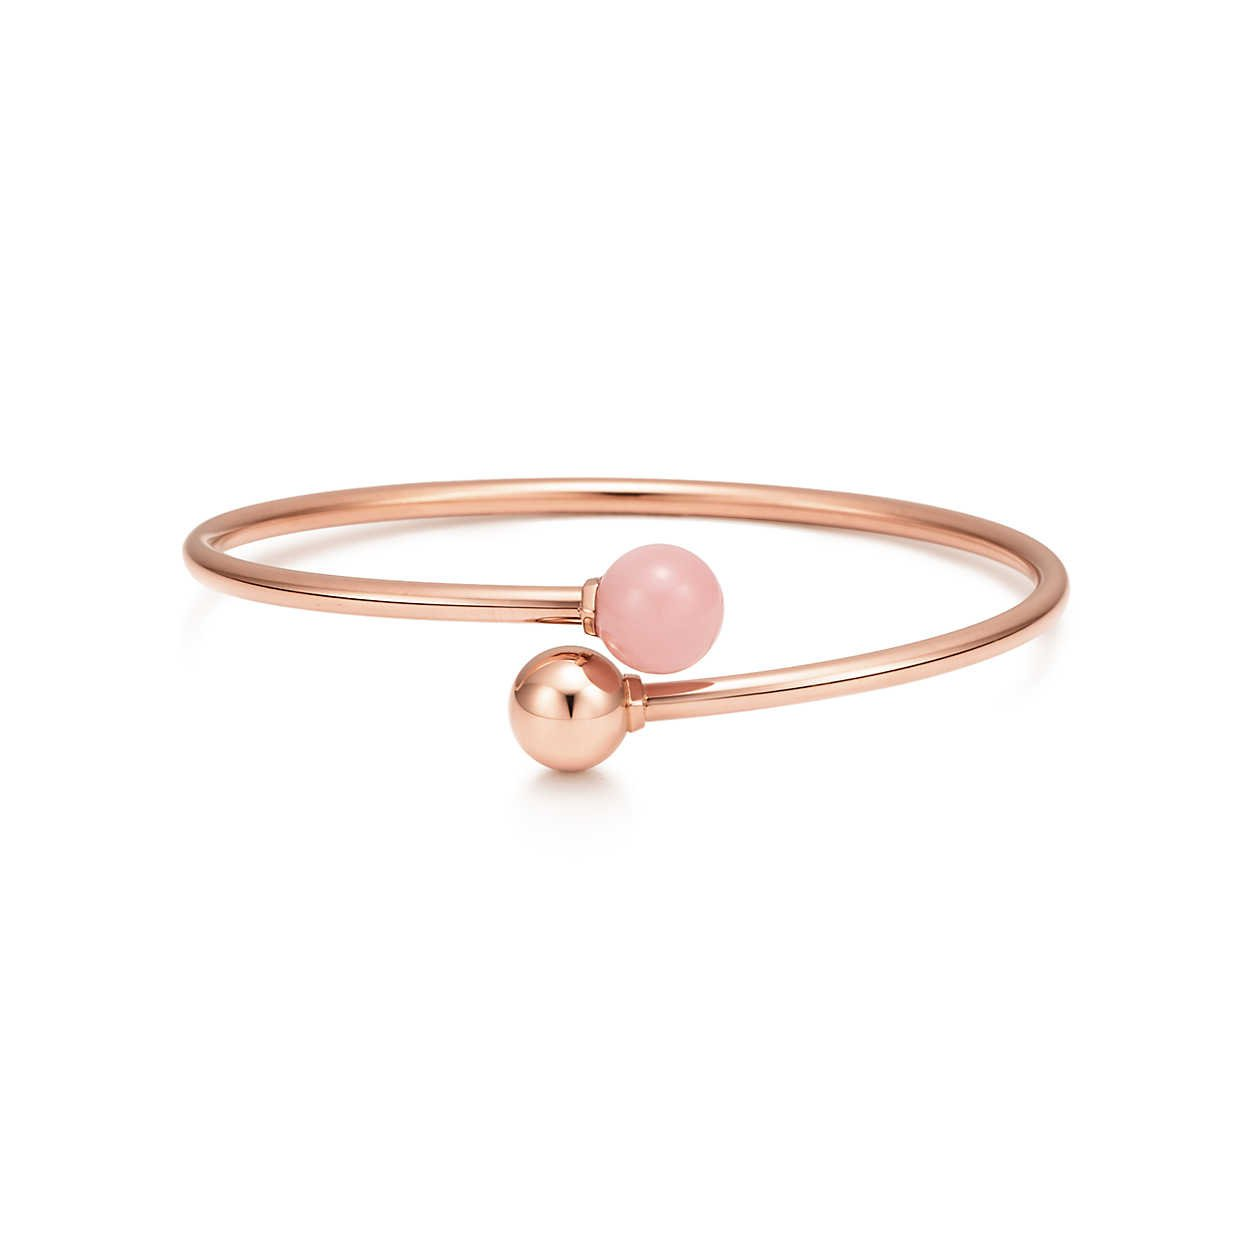 59b269604 Tiffany HardWear ball bypass bracelet in 18k rose gold with pink quartz,  medium.